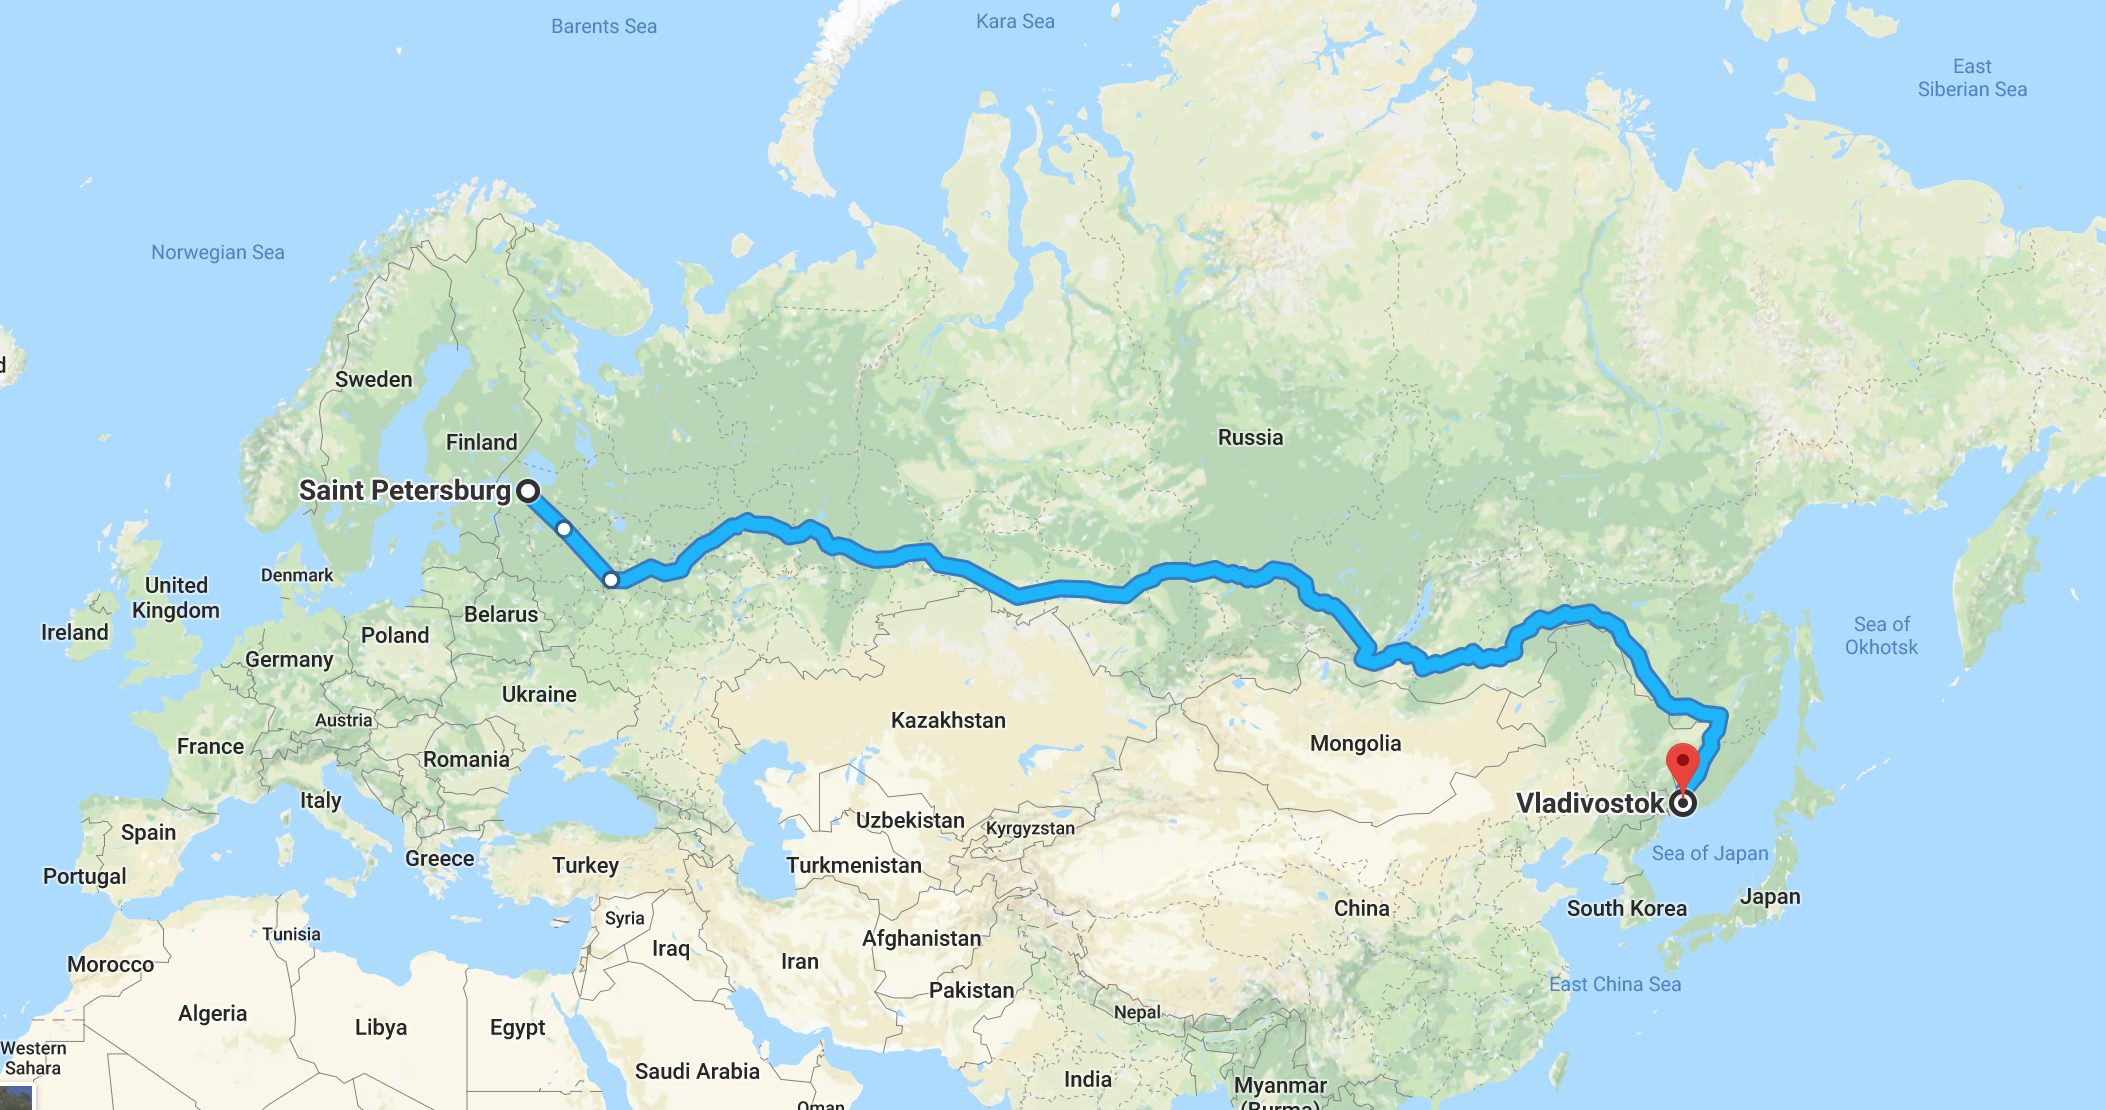 The route of my trip along the Trans-Siberian Railway, from St Petersburg to Vladivostok.